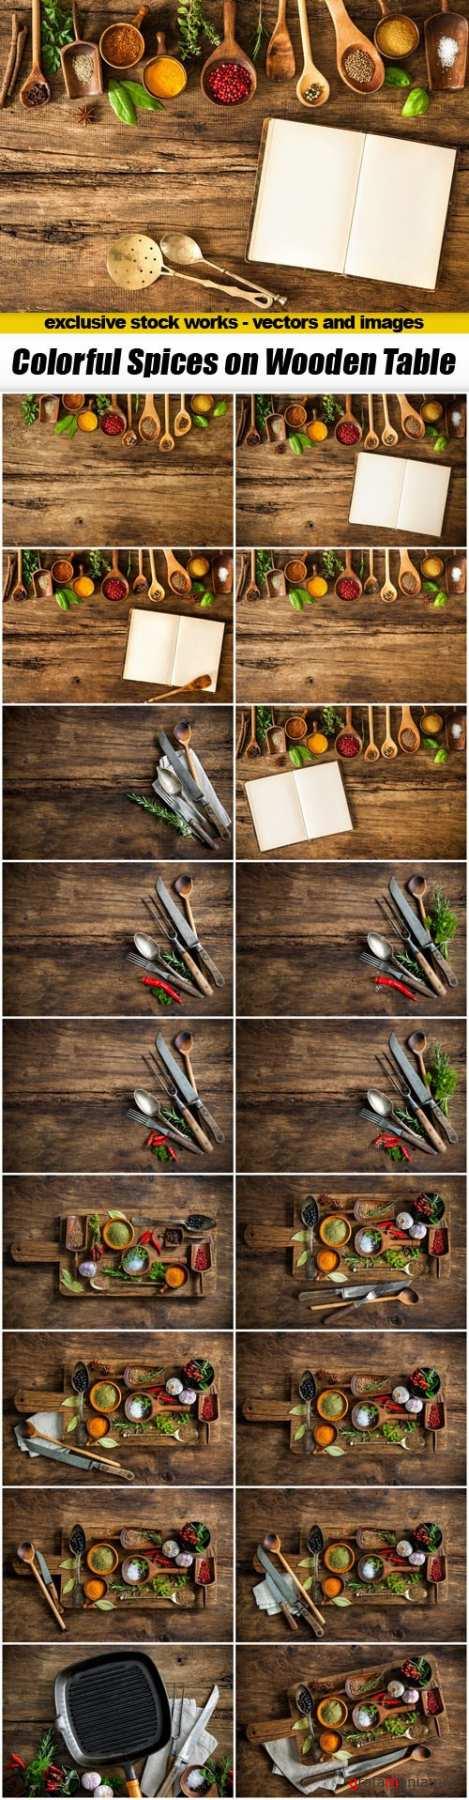 Colorful Spices on Wooden Table - 19xUHQ JPEG